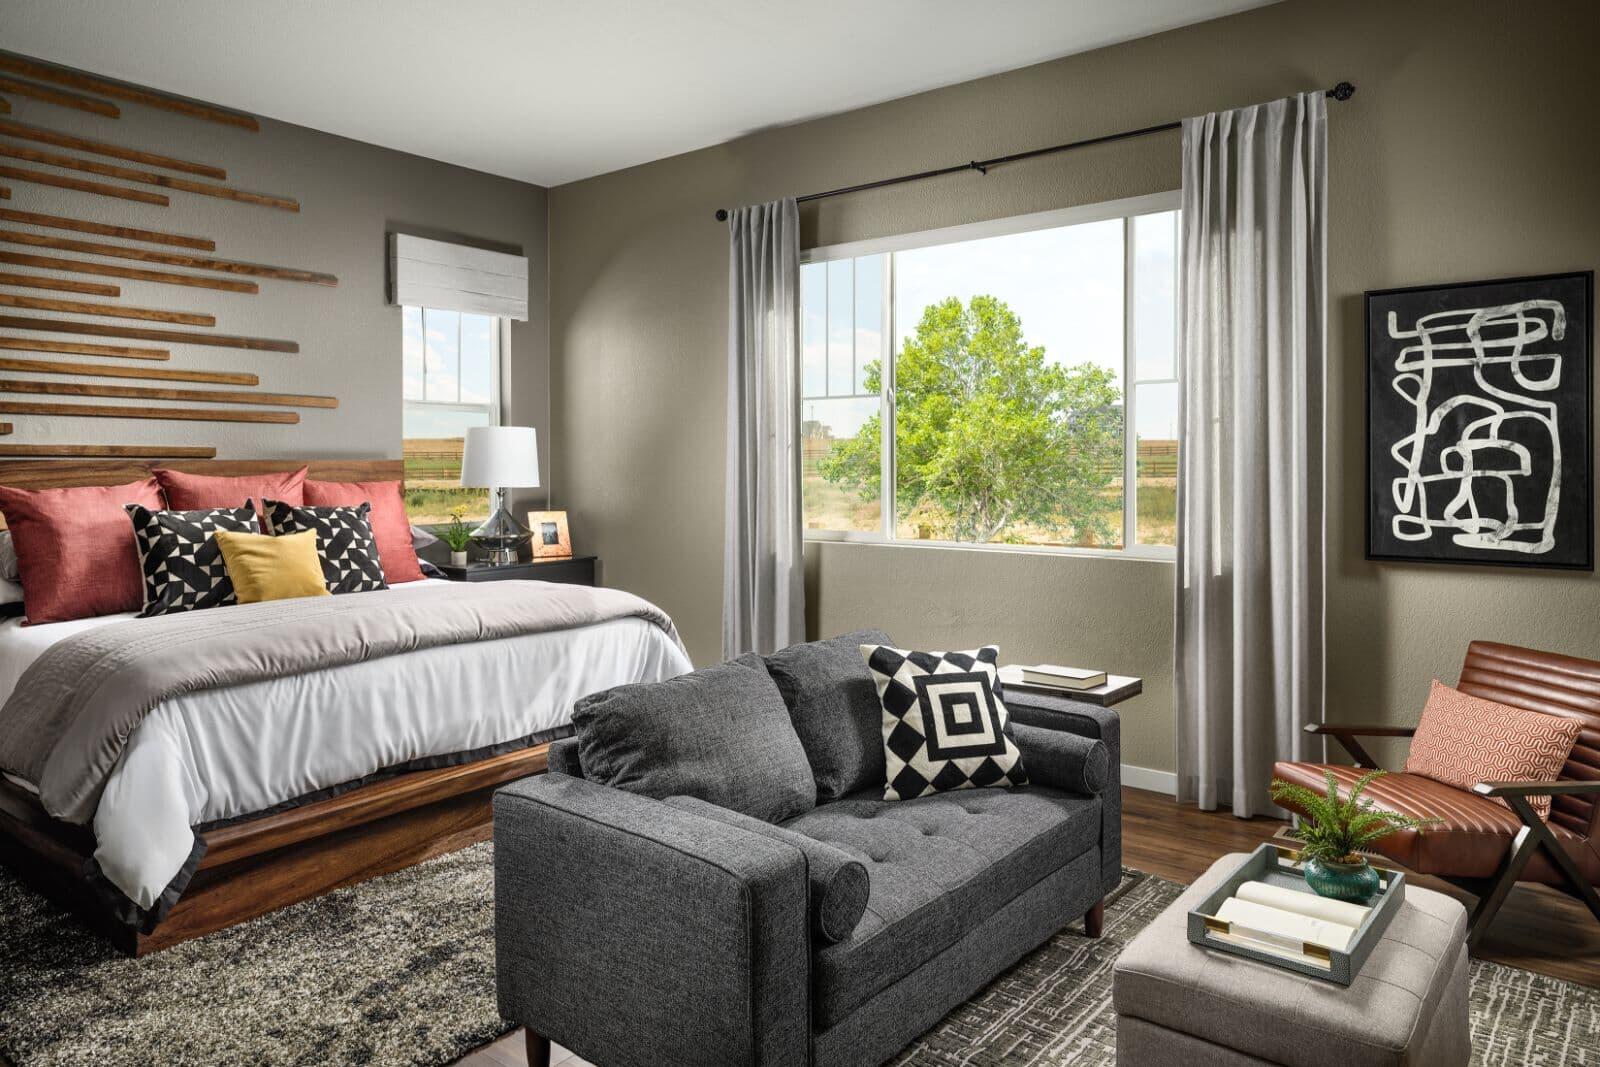 Ovation One Master Bedroom Brighton Crossings Denver Colorado